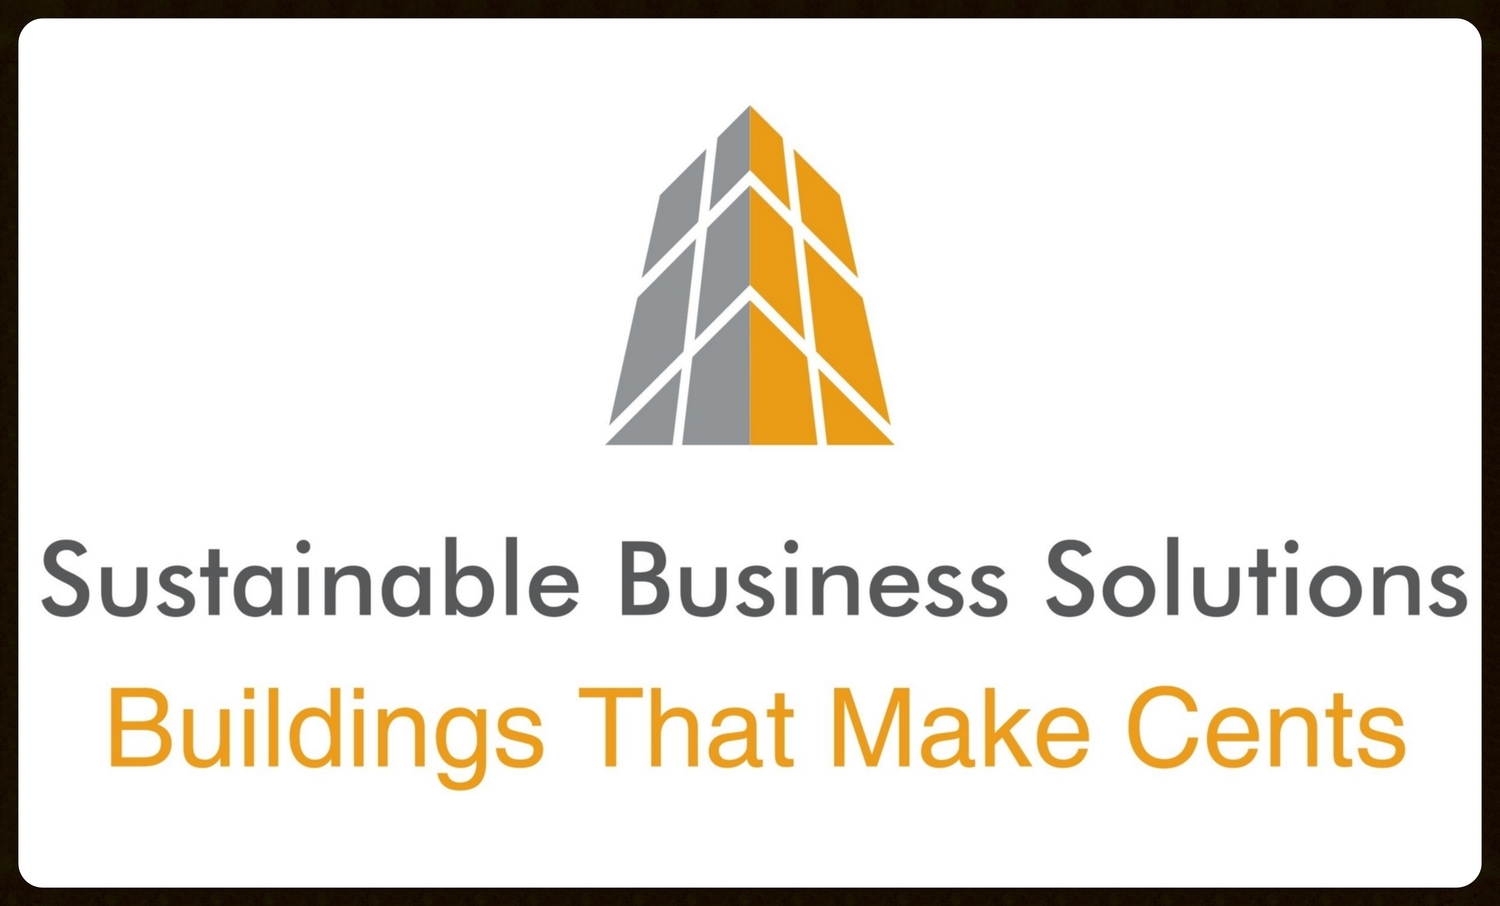 Sustainable Business Solutions